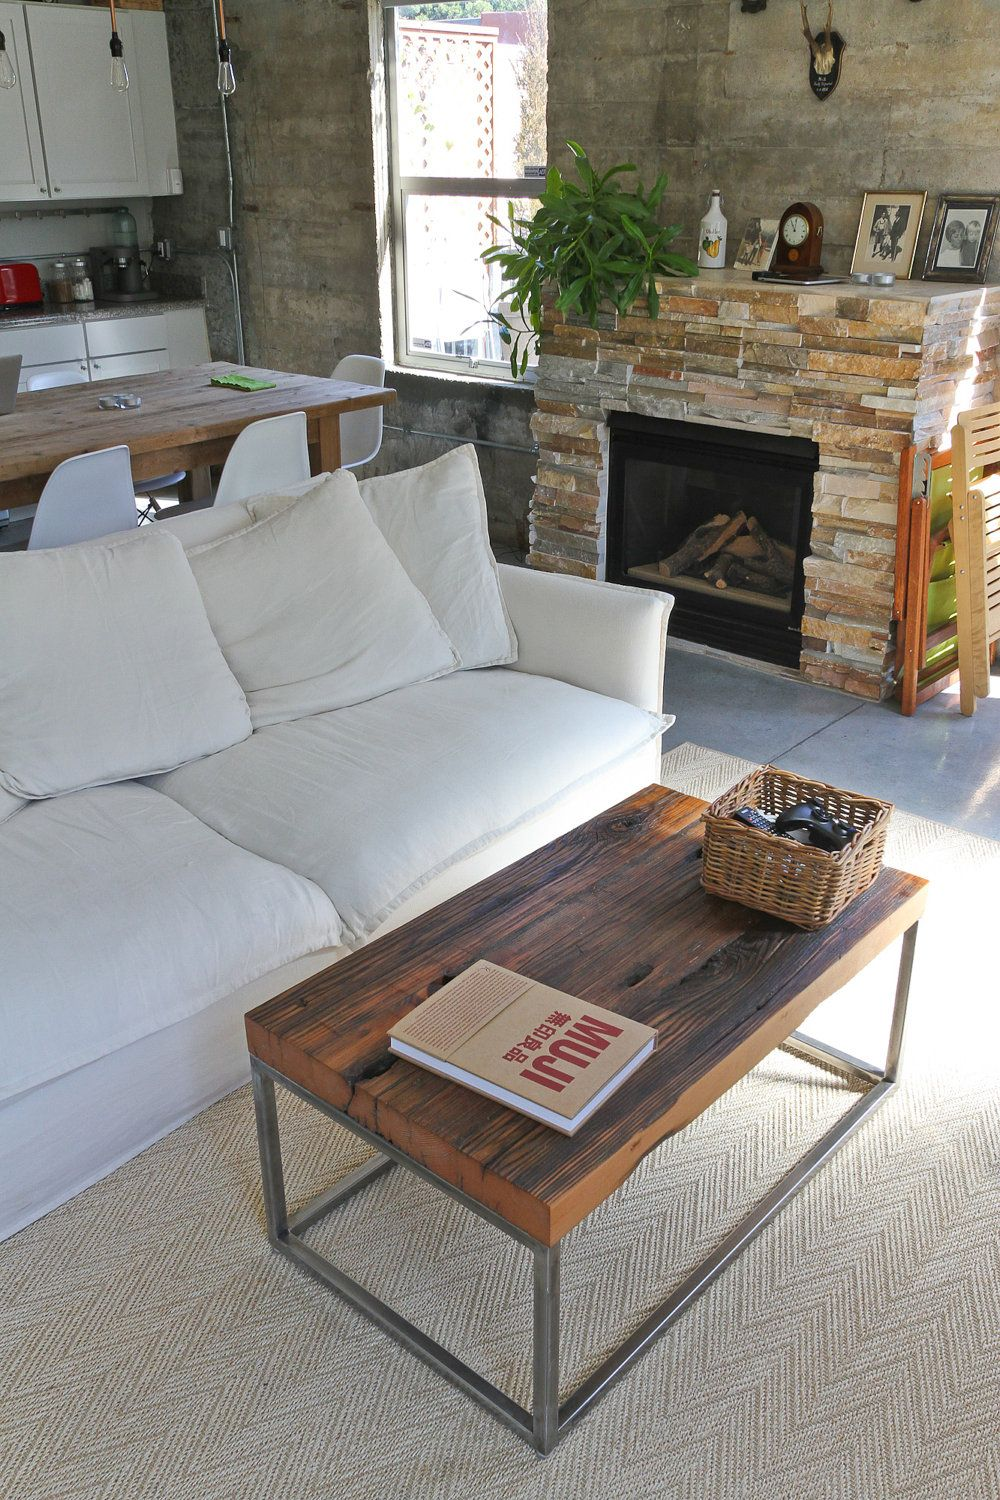 Colton Coffee Table Dream Home Pinterest Coffee Small Places - Colton coffee table